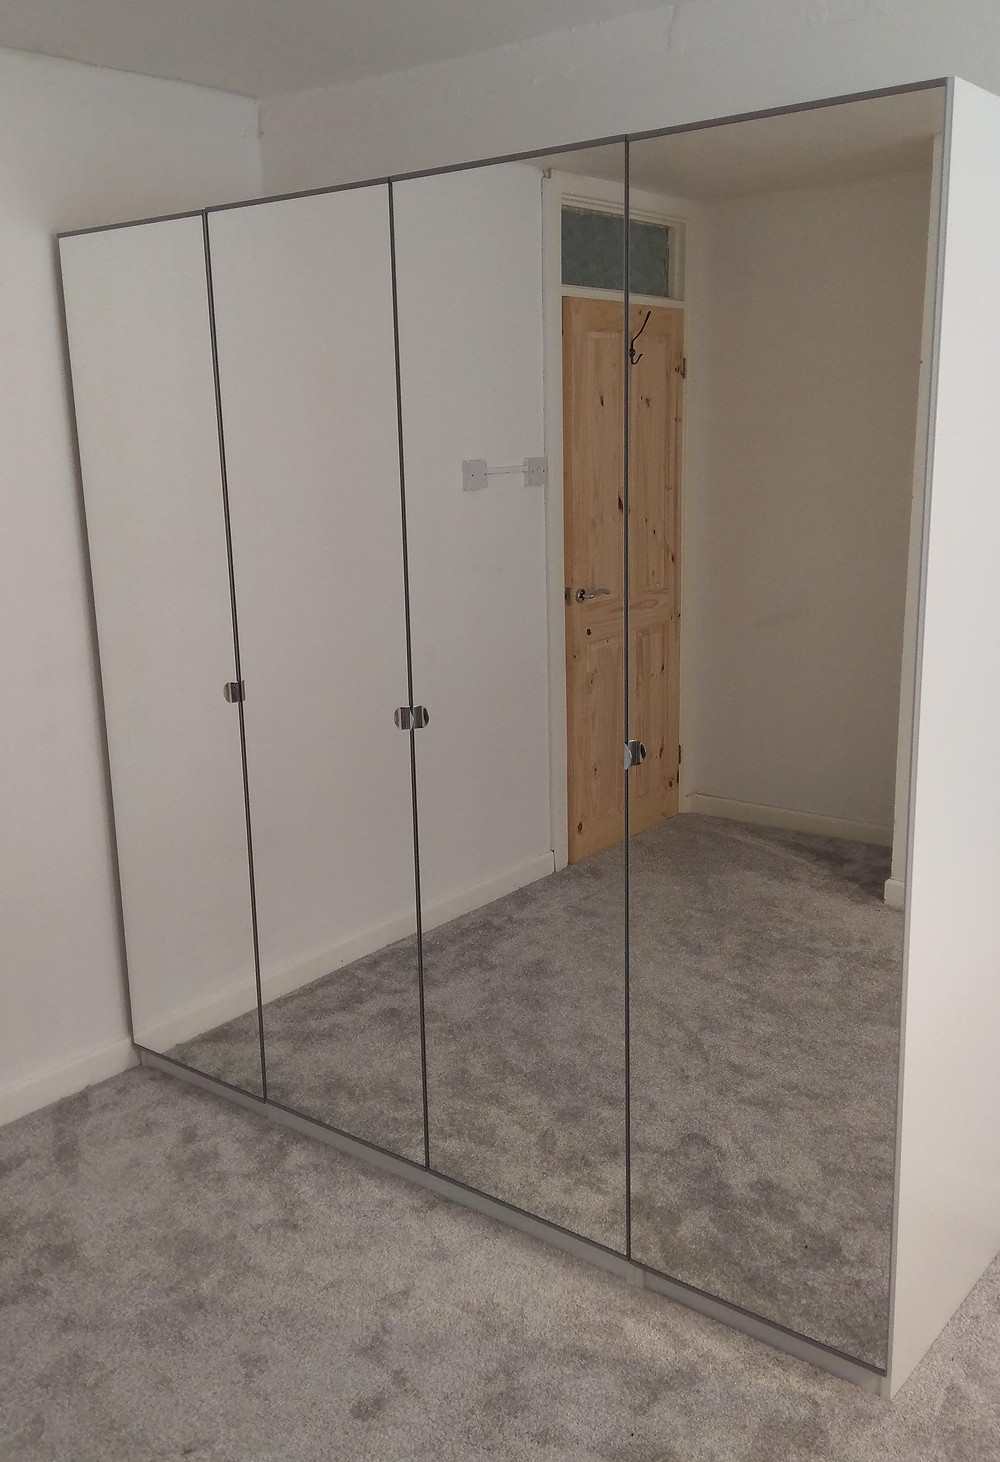 Flat Pack Swansea Furniture Assembly Ikea Wardrobes Llanelli Neath Port Talbot Builld